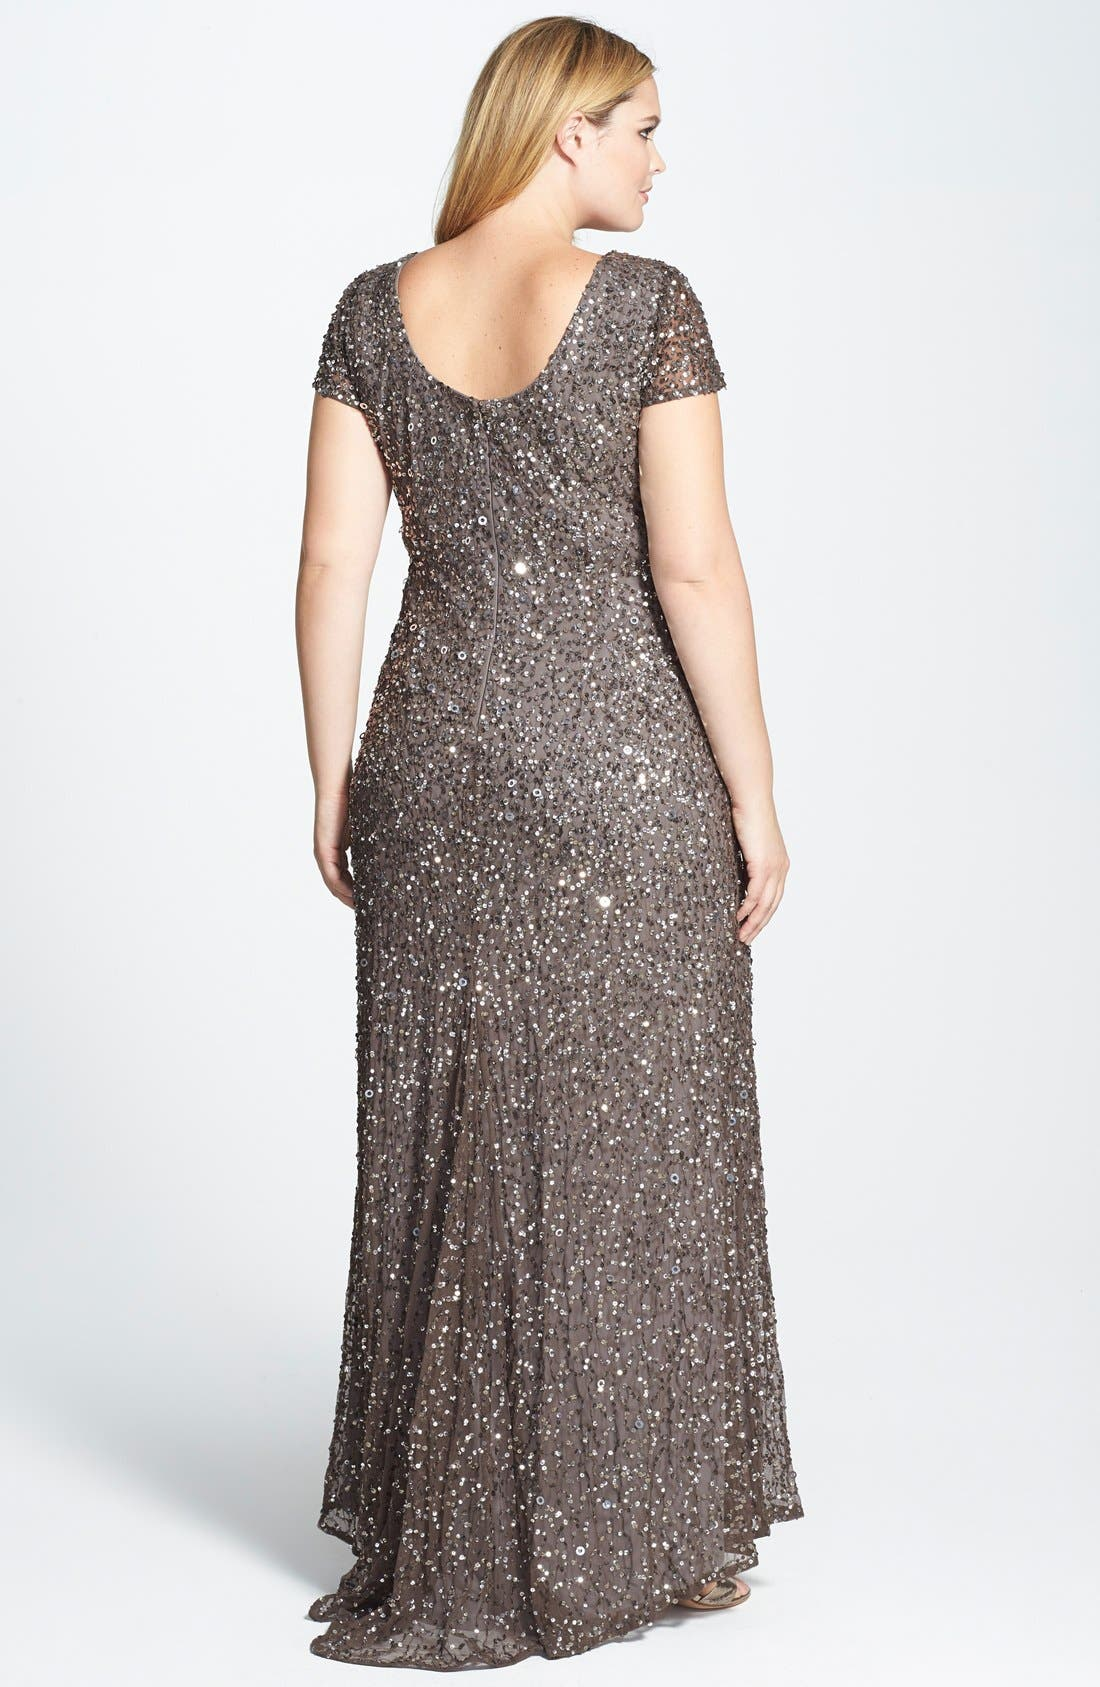 ADRIANNA PAPELL, Embellished Scoop Back Gown, Alternate thumbnail 8, color, 050